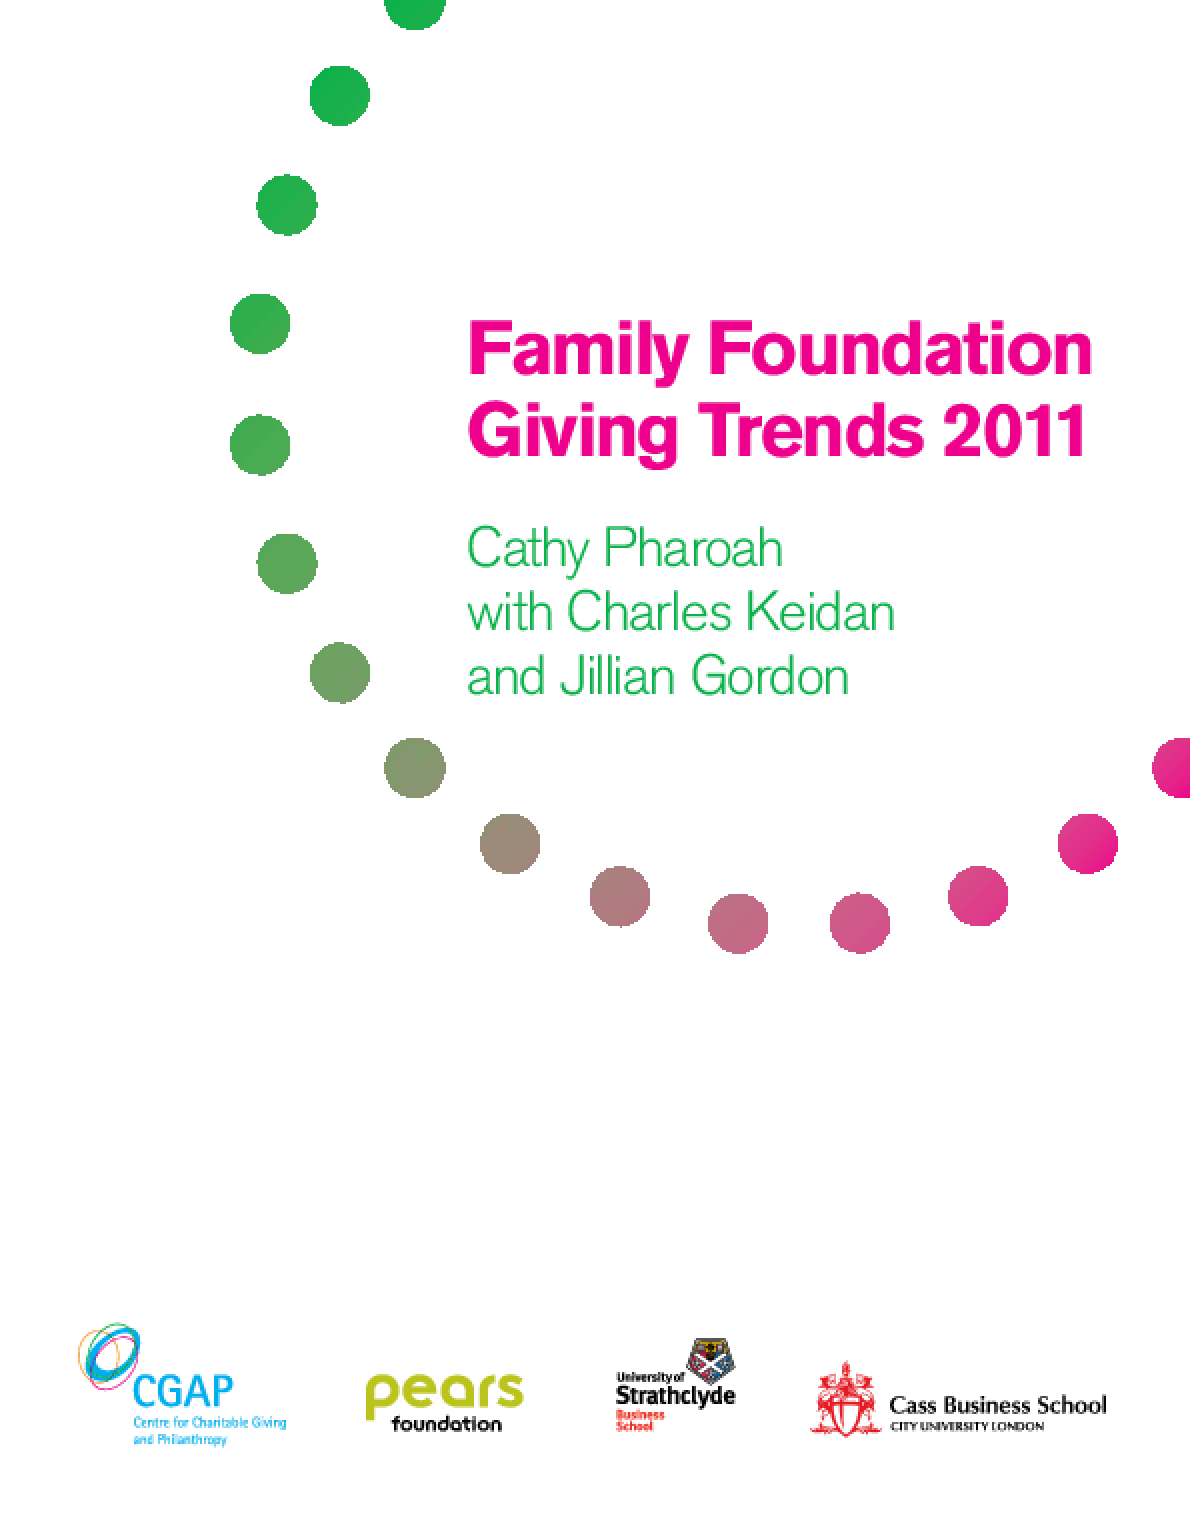 Family Foundation Giving Trends 2011